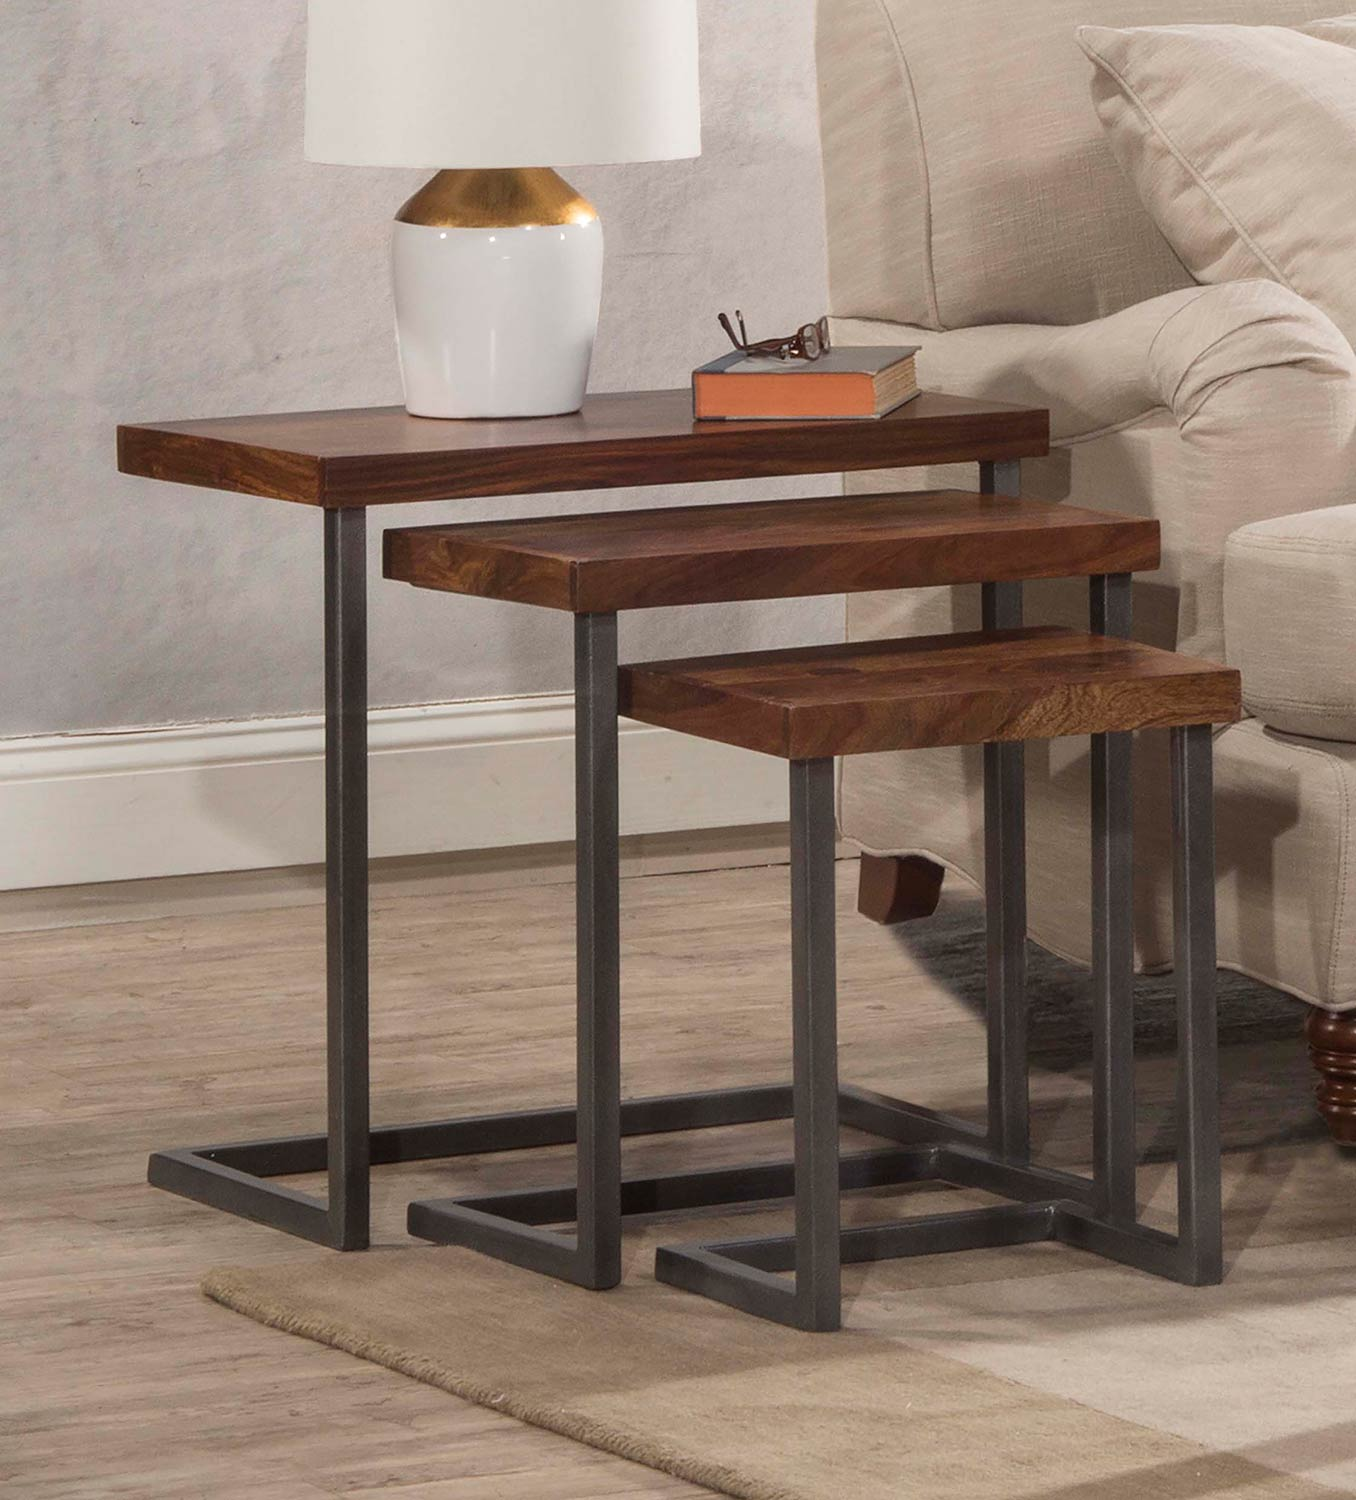 Hillsdale Emerson 3-Set Nesting Tables - Sheesham/Grey